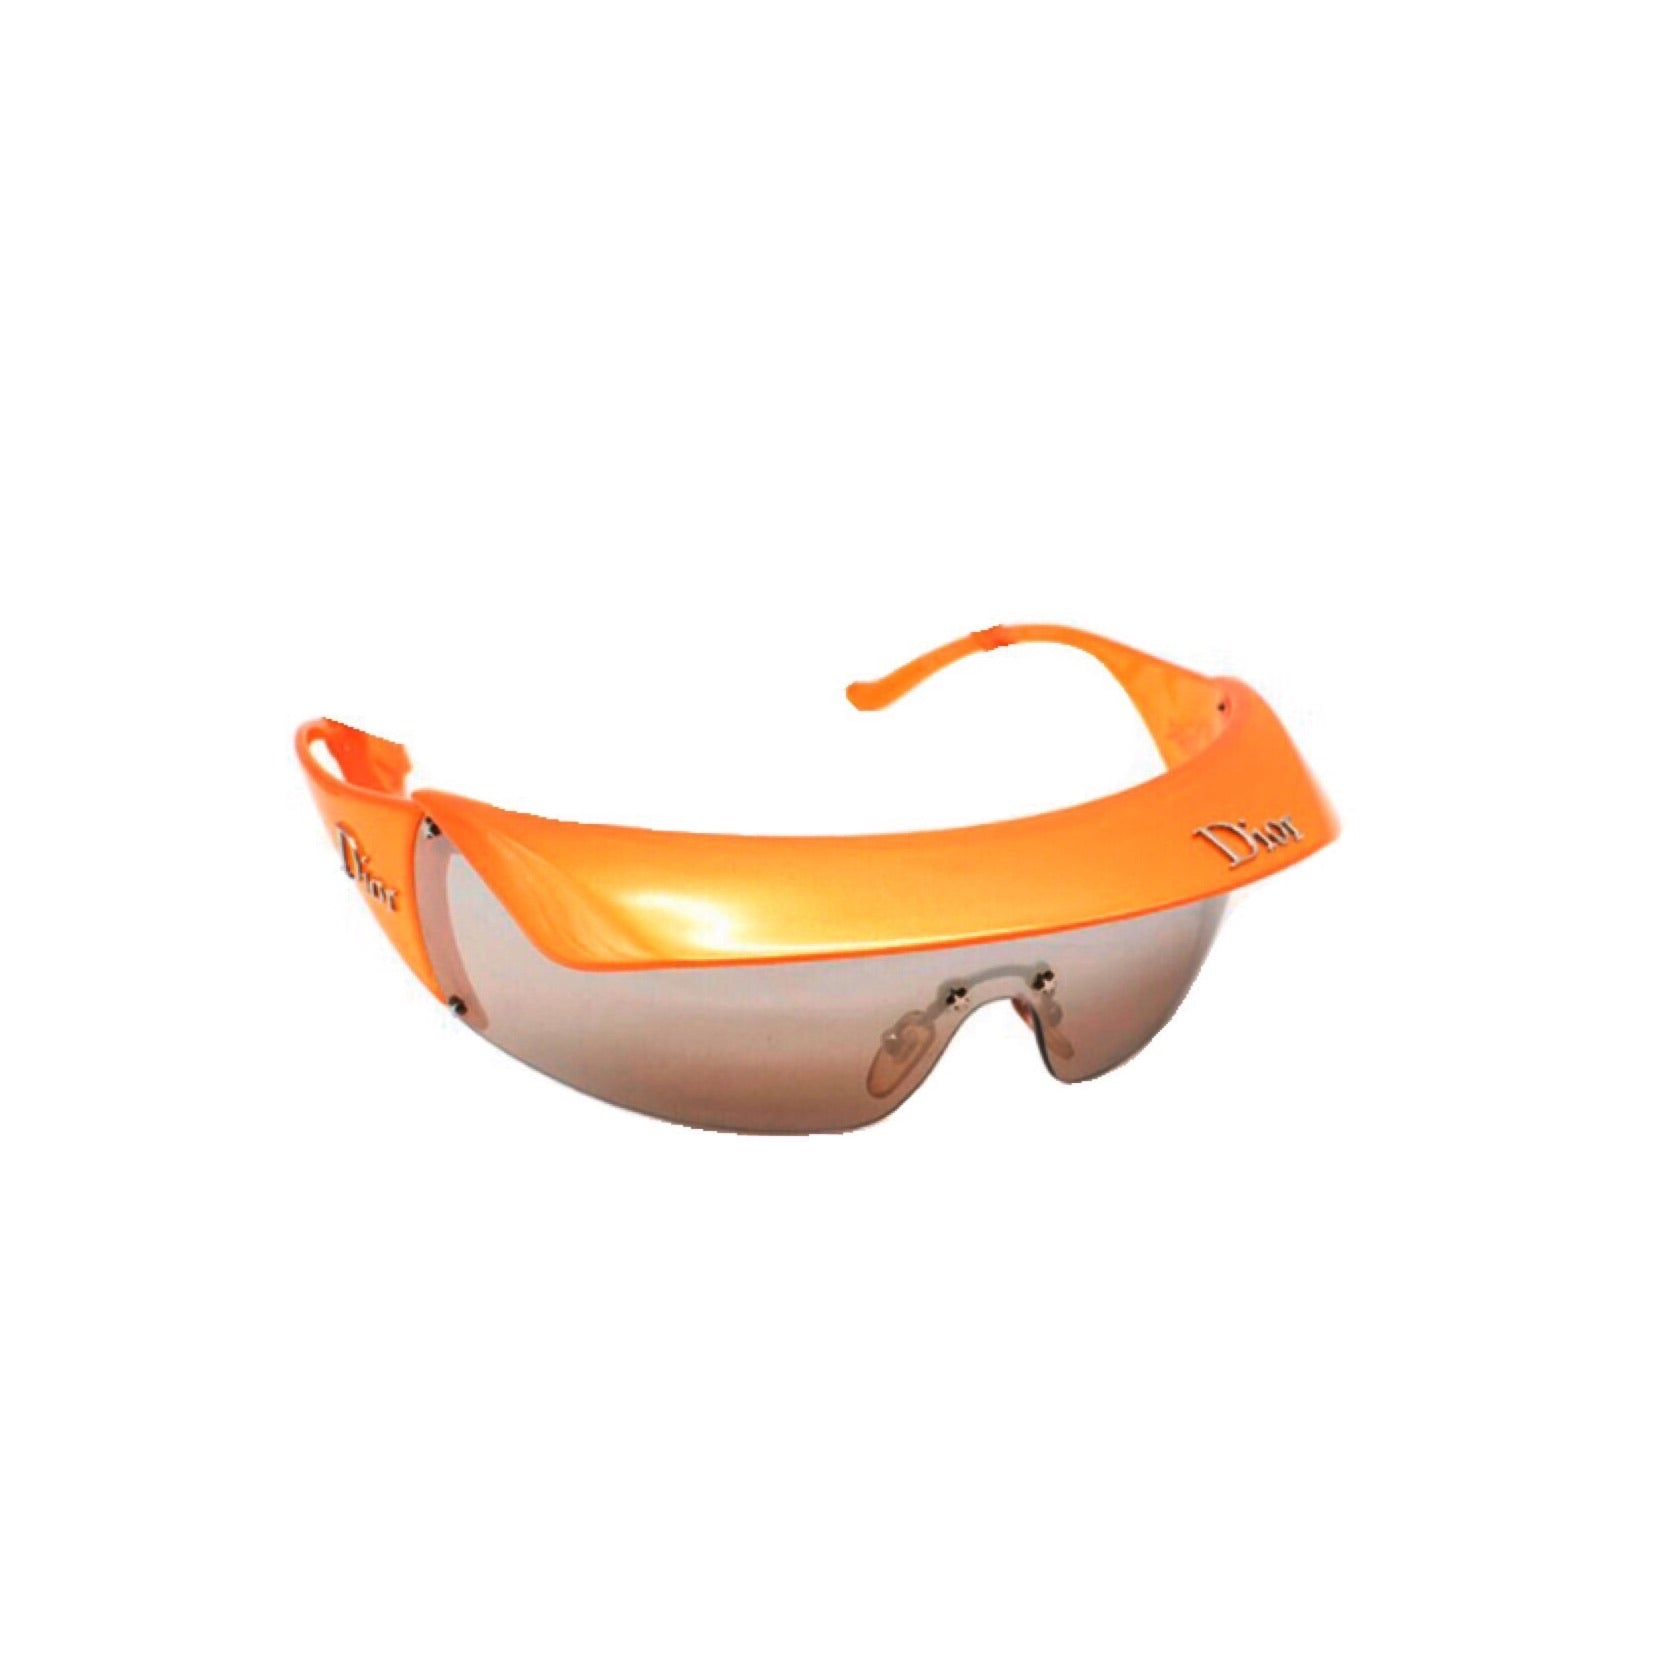 DIOR - FALL 2004 TANGERINE GOLF REMOVABLE VISOR SUNGLASSES